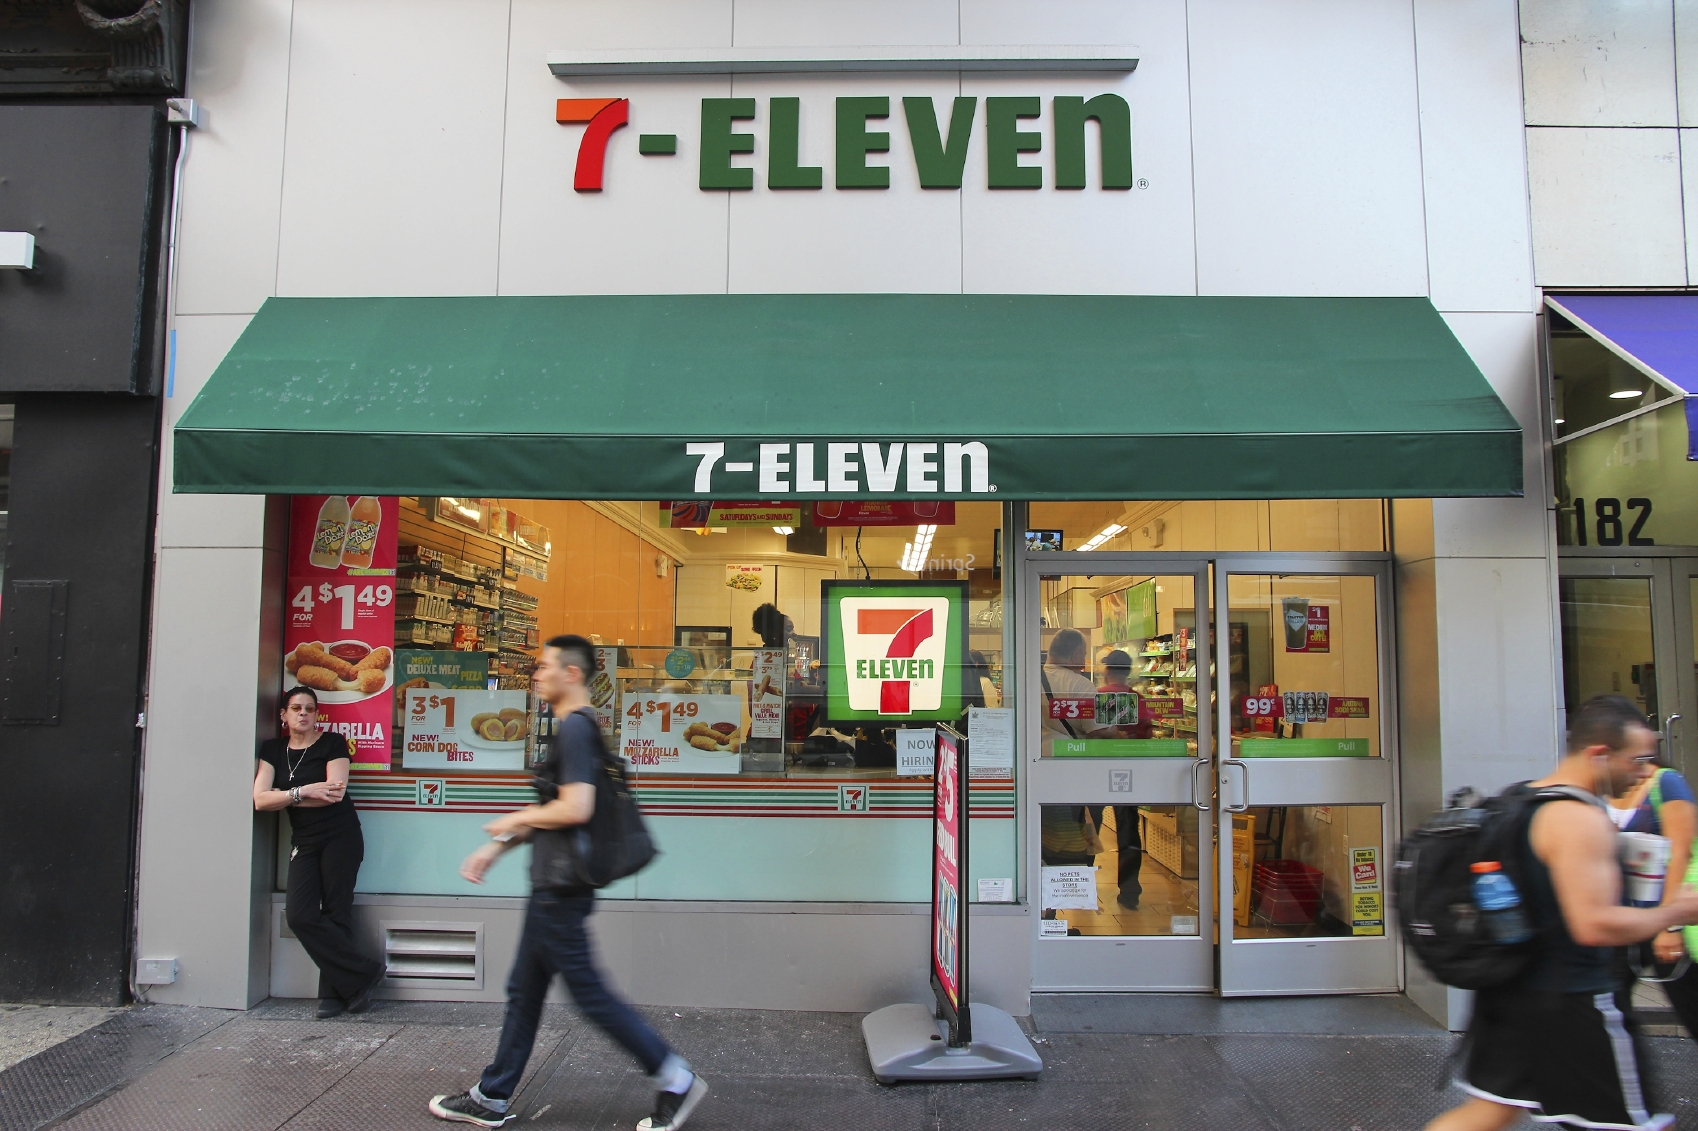 7 Eleven Expands Home Delivery In Several Cities CBS News